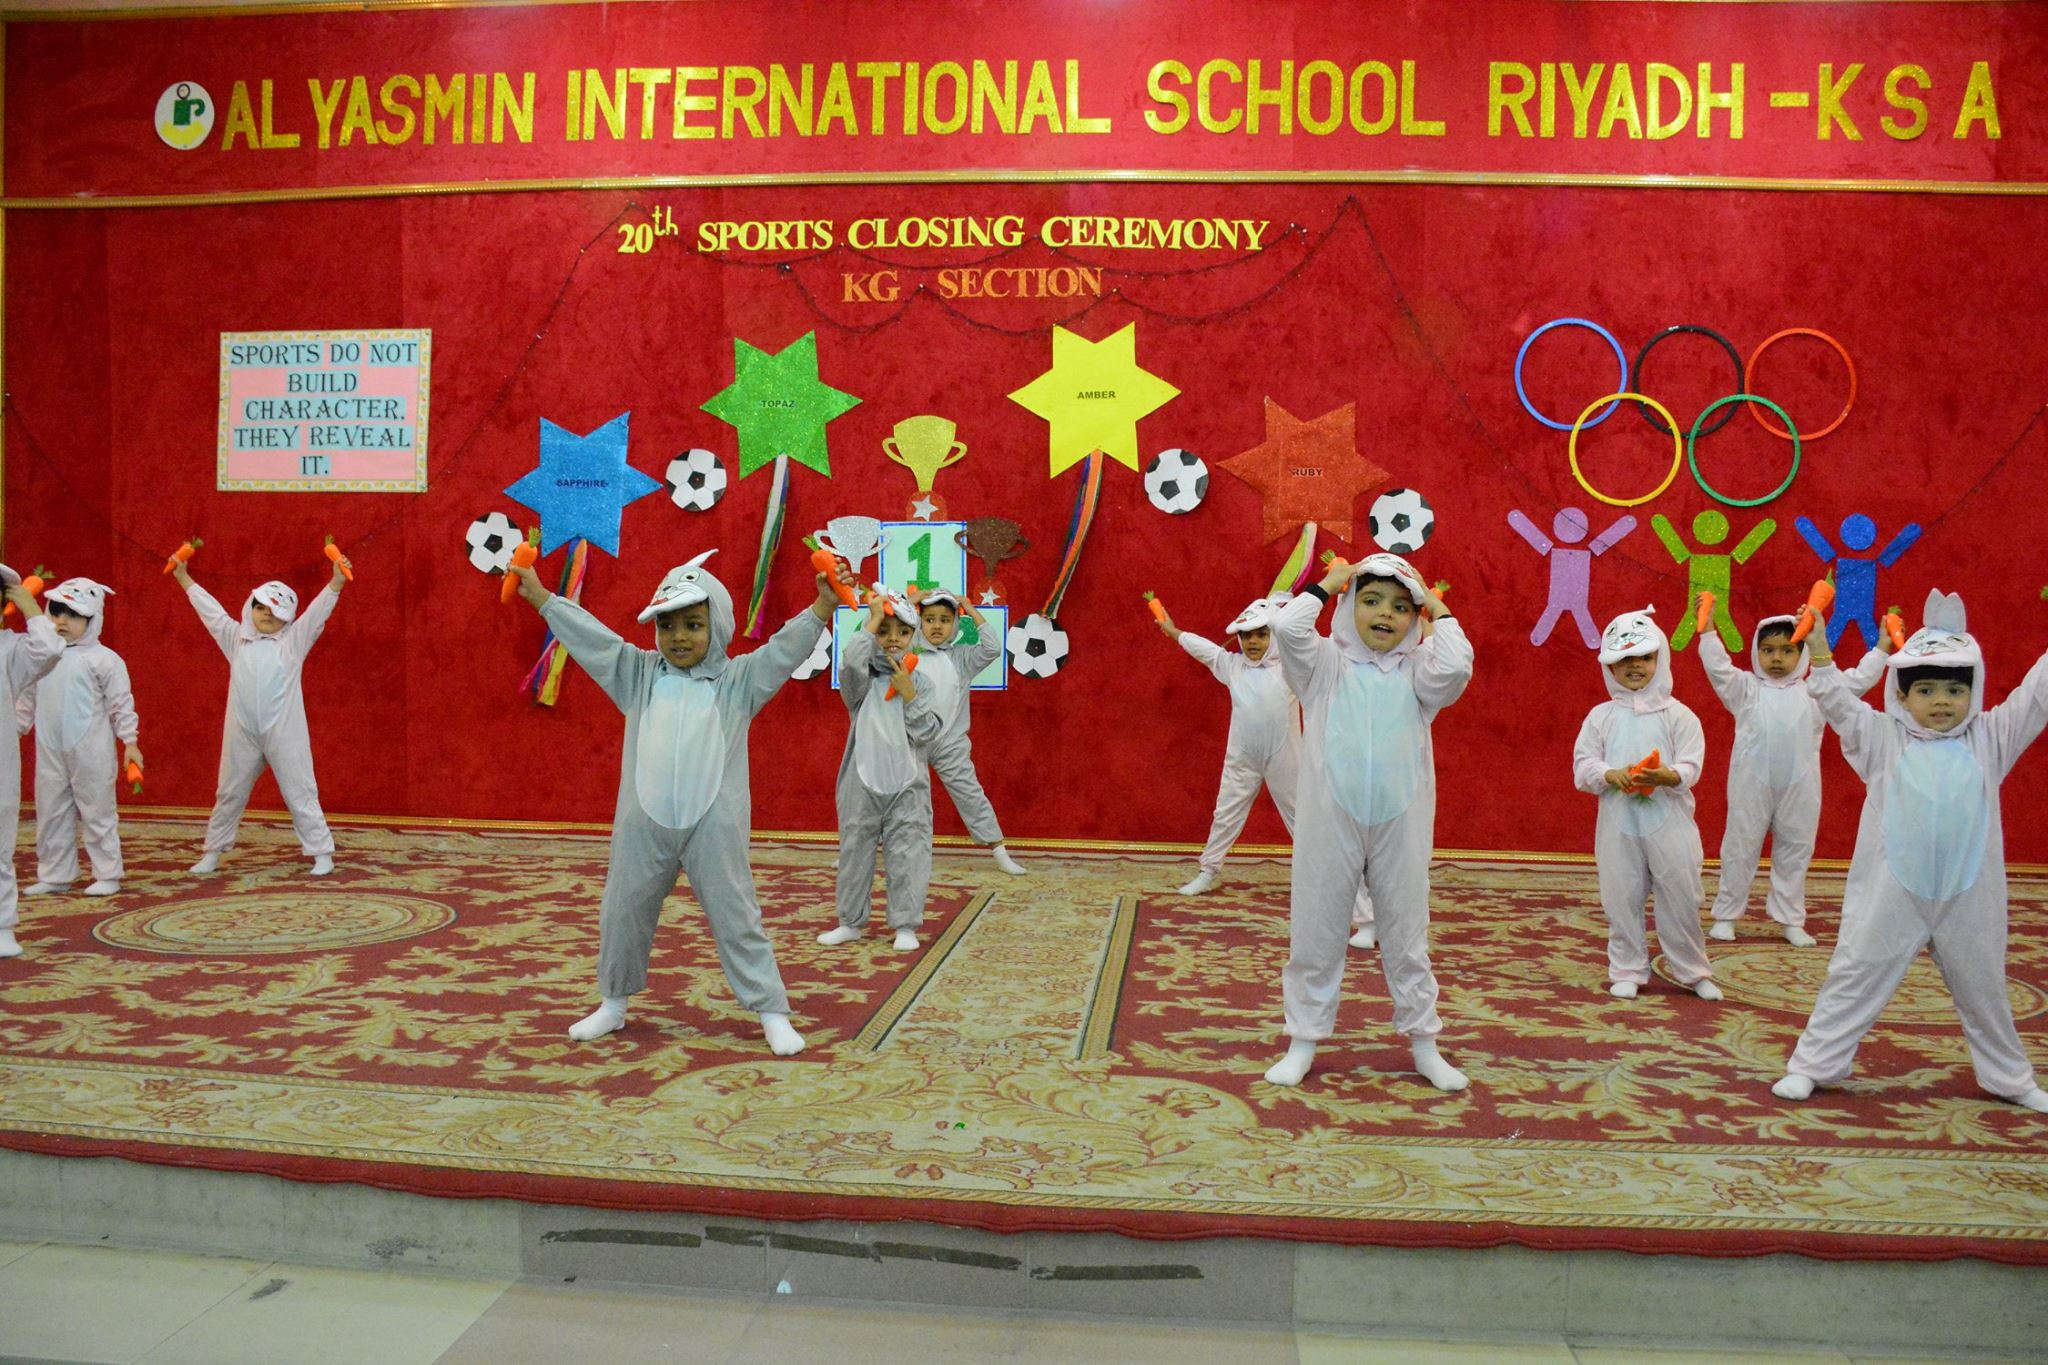 20th Annual Sports Ceremony Kg Section